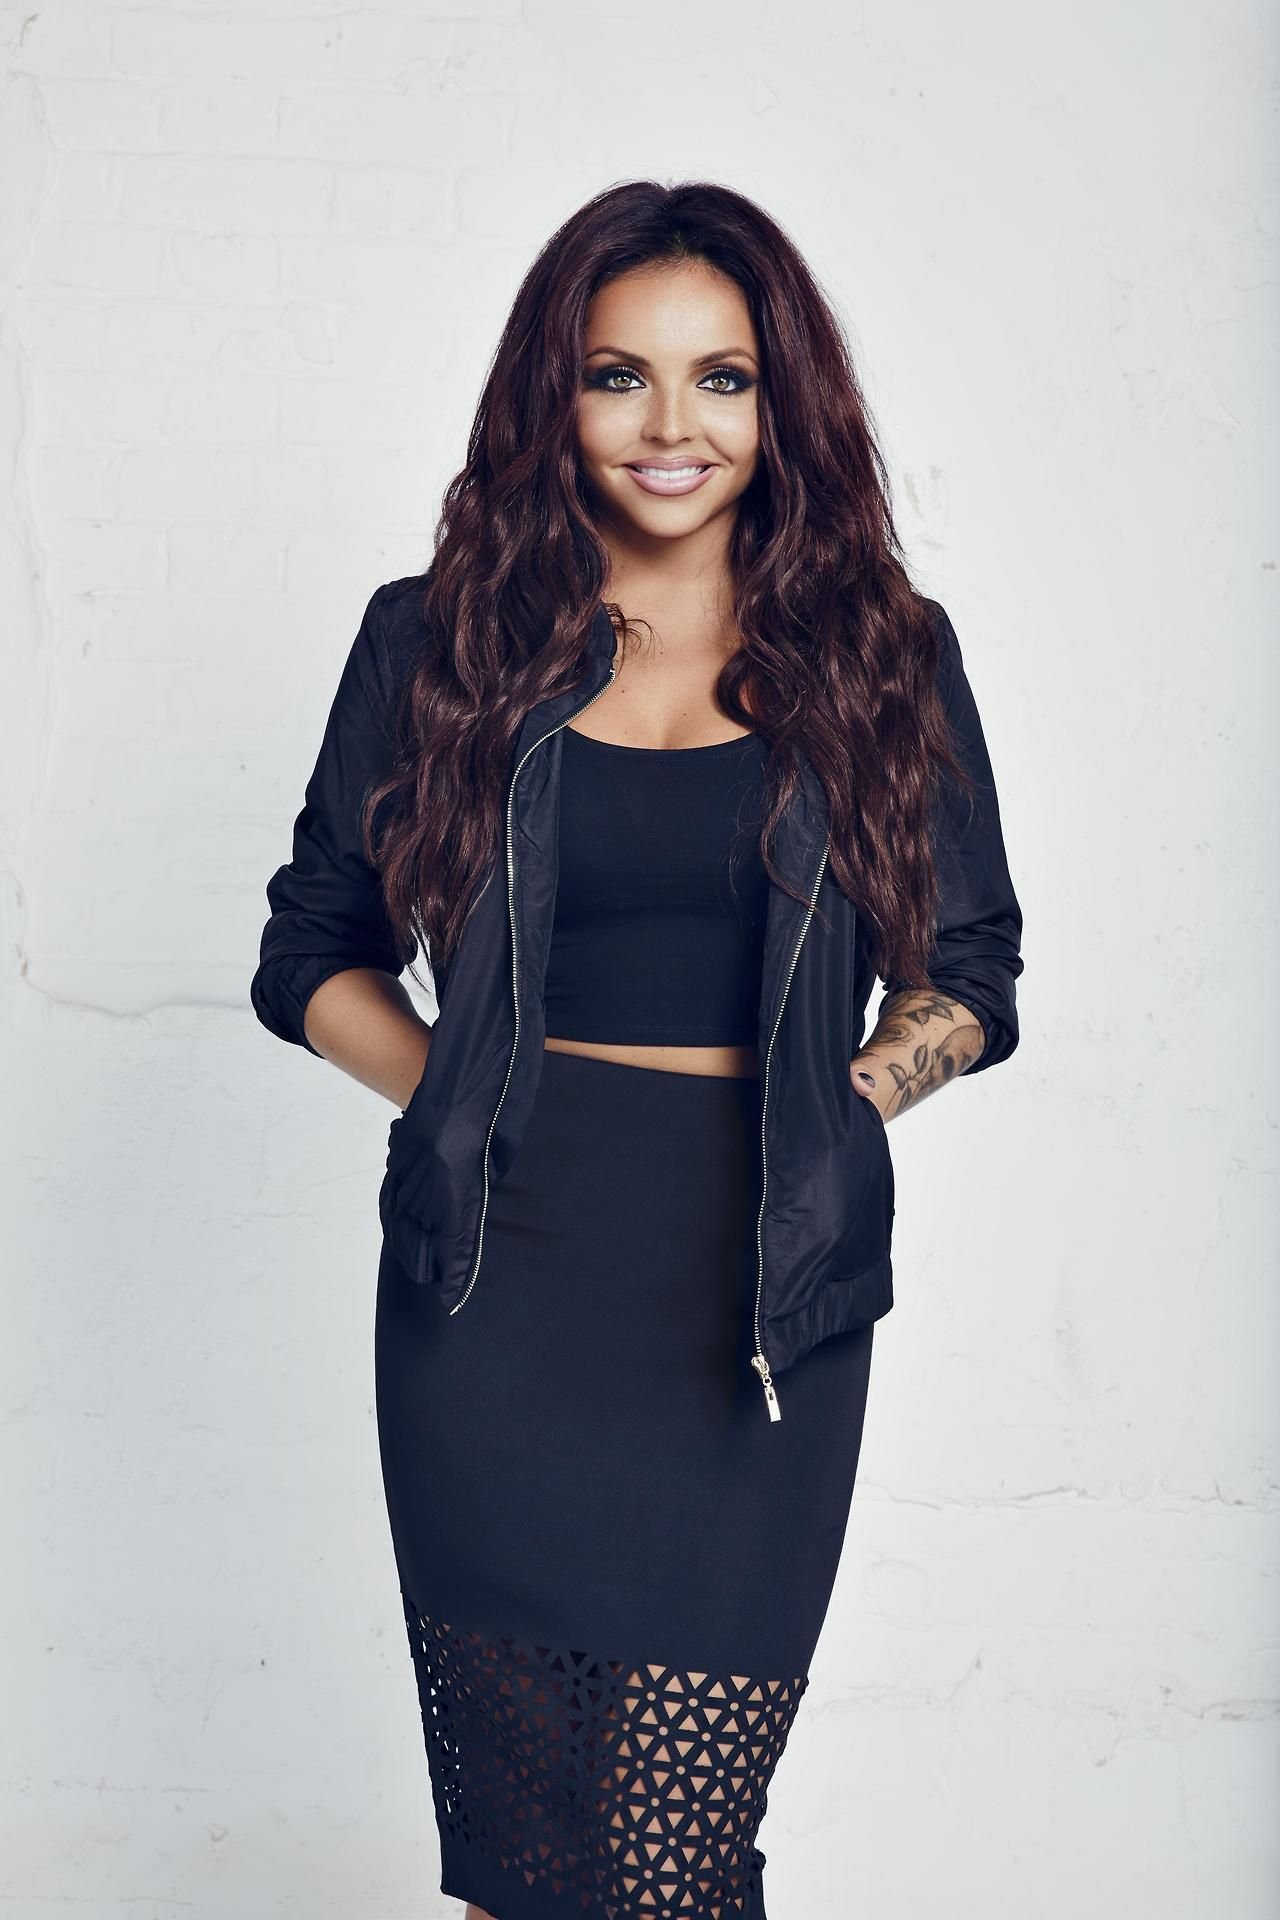 Hot Jesy Nelson naked (43 photos), Topless, Cleavage, Selfie, butt 2006